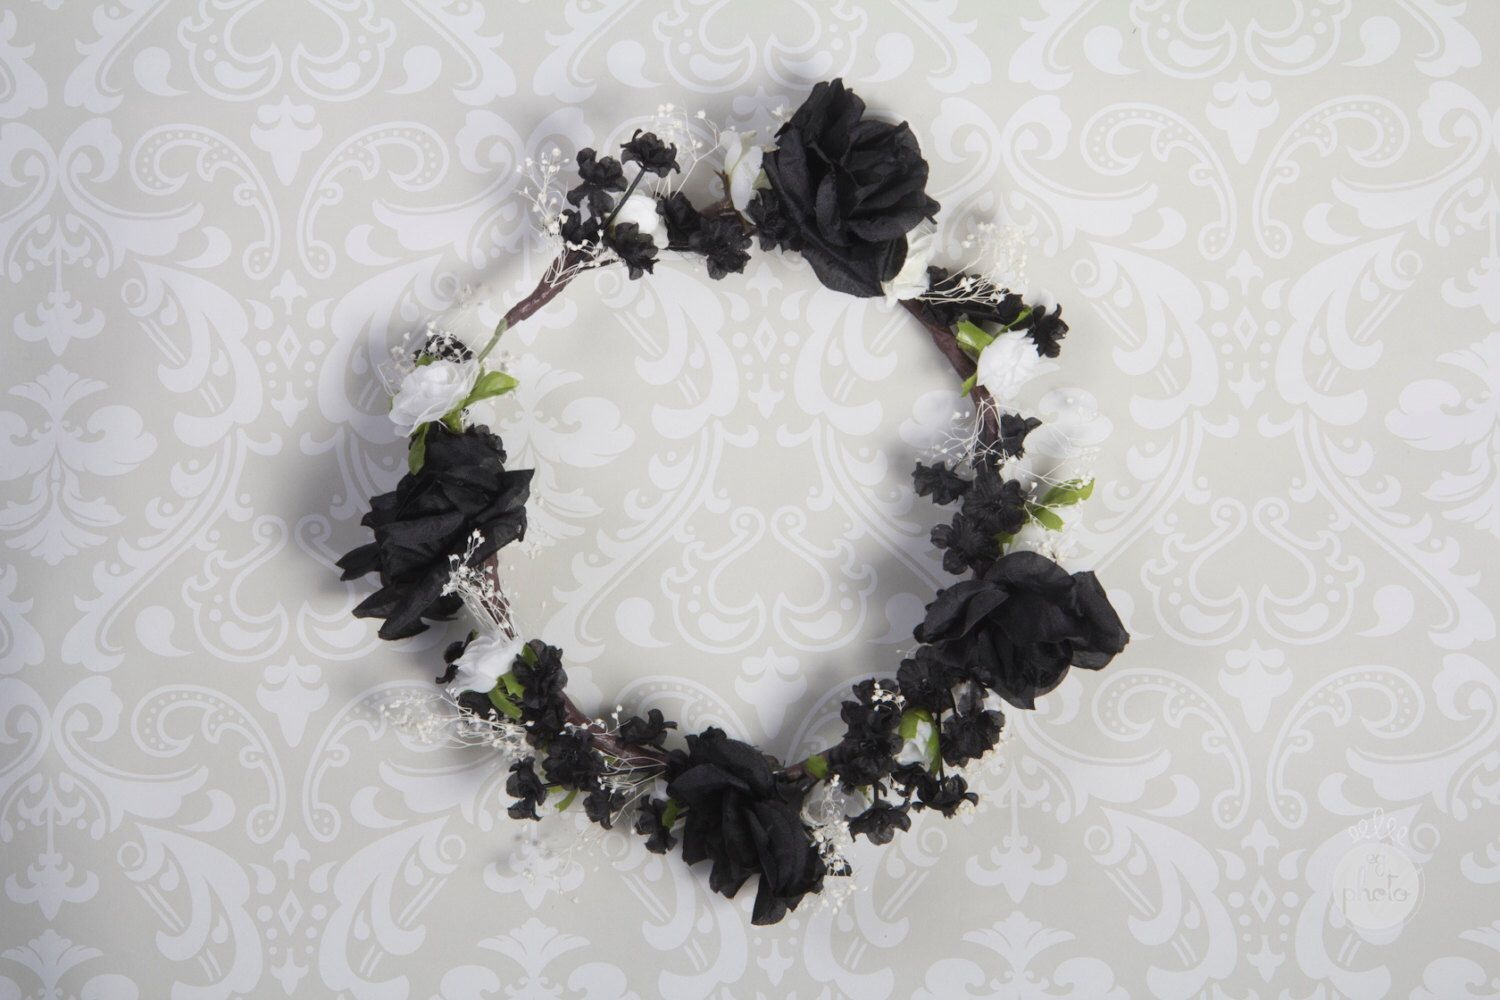 Black and white rose flower crown by eringabrielcrowns on etsy black and white rose flower crown by eringabrielcrowns on etsy httpsetsylisting228449773black and white rose flower crown izmirmasajfo